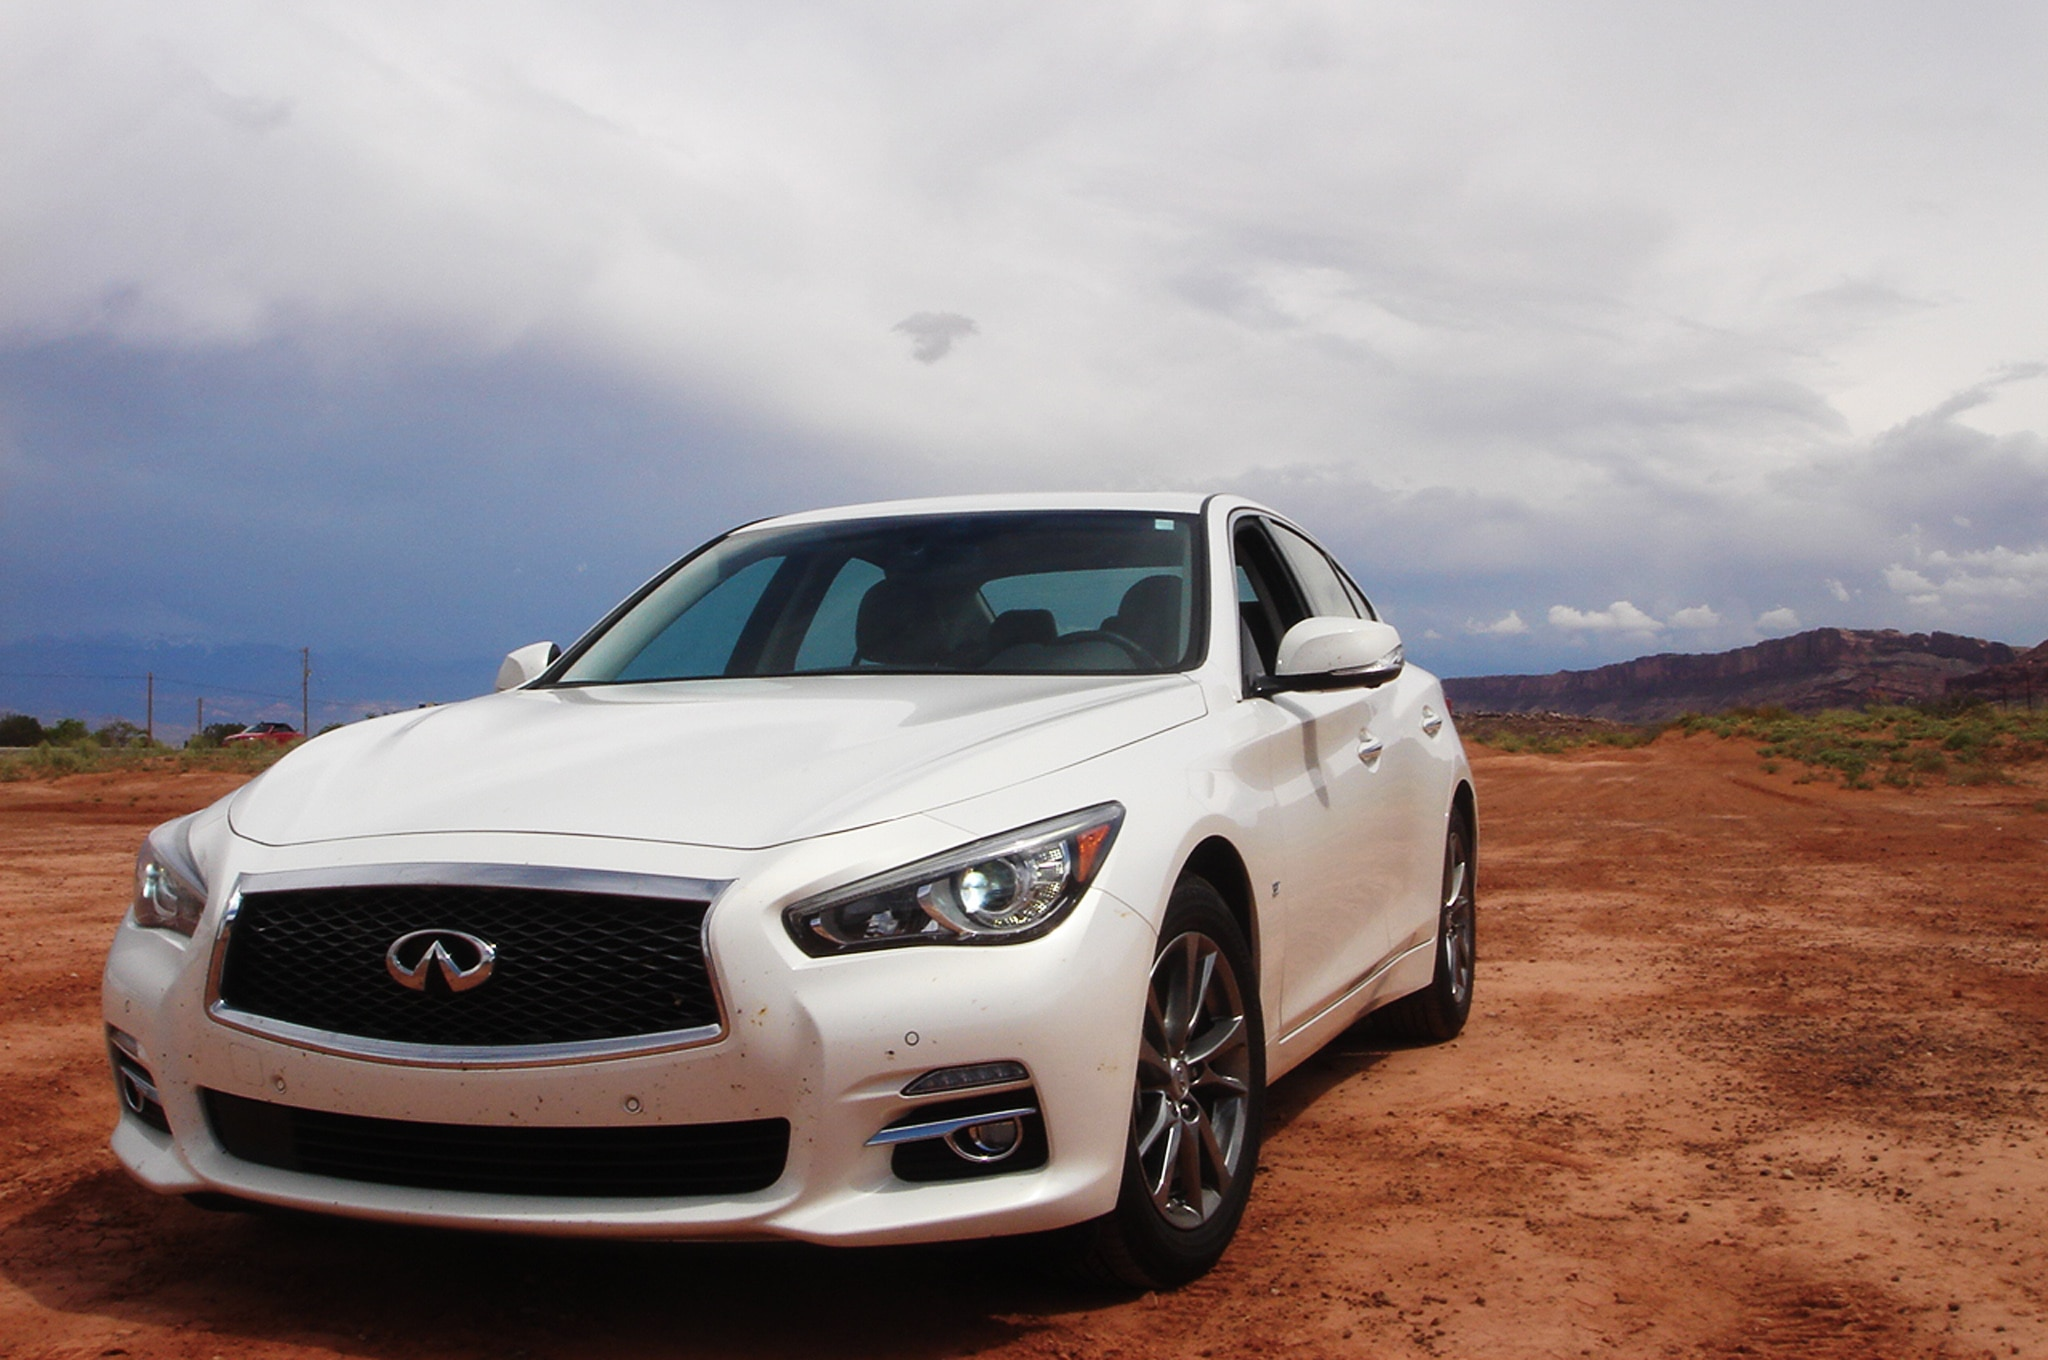 2014 infiniti q50 3 7 awd premium destination sin city. Black Bedroom Furniture Sets. Home Design Ideas